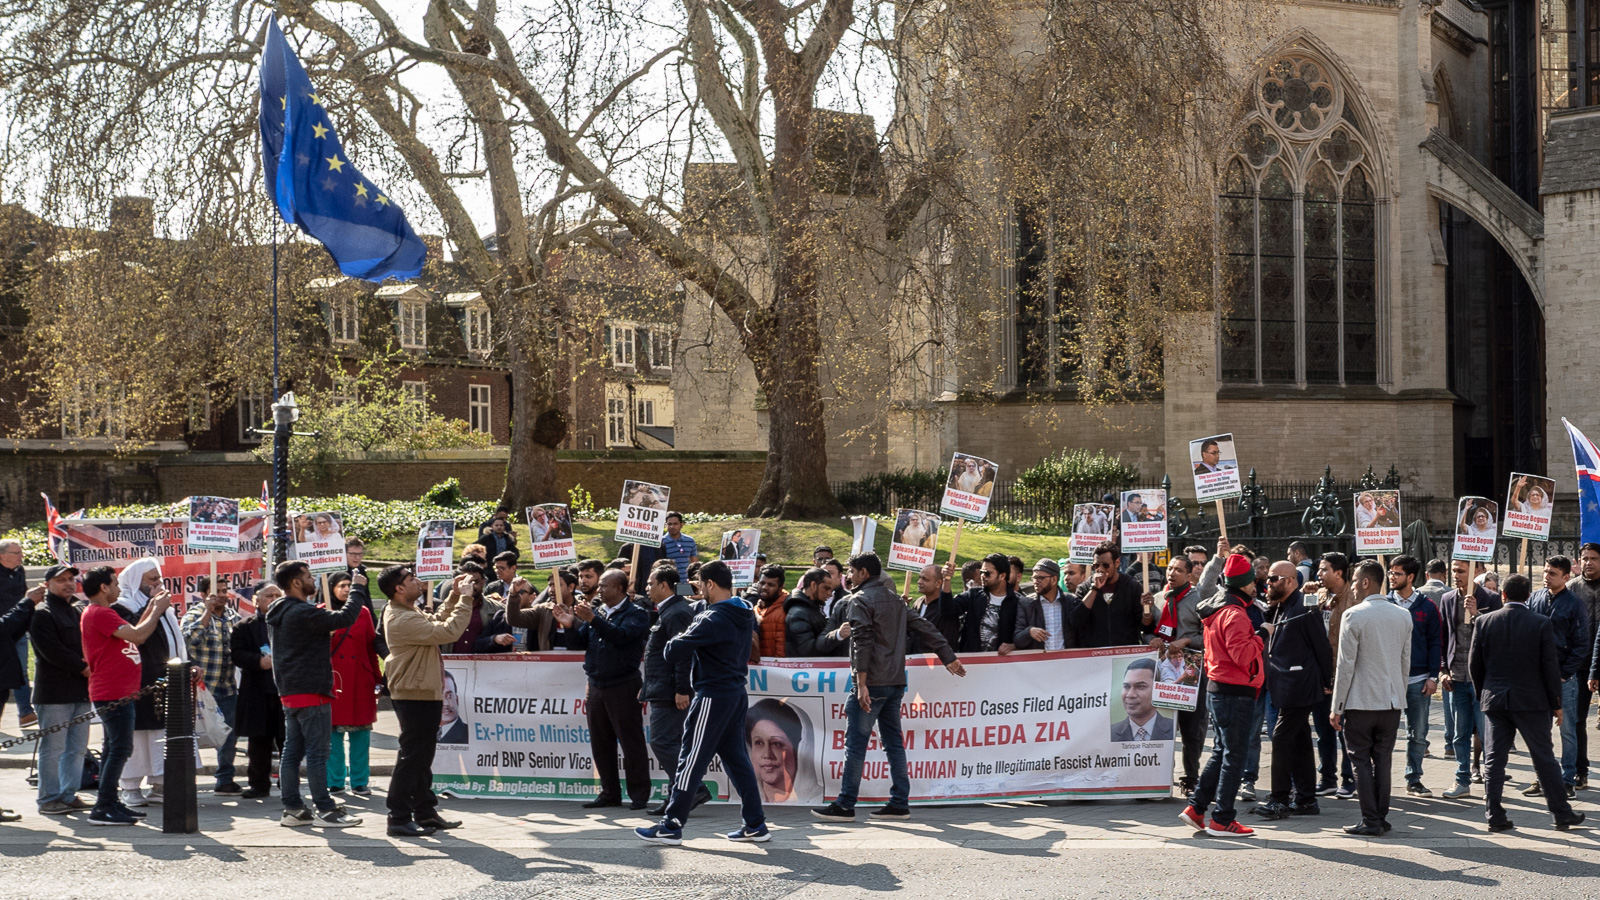 Brexit is not the only game in town. Between Parliament Square and College Green, a group protests events in Bangladesh.